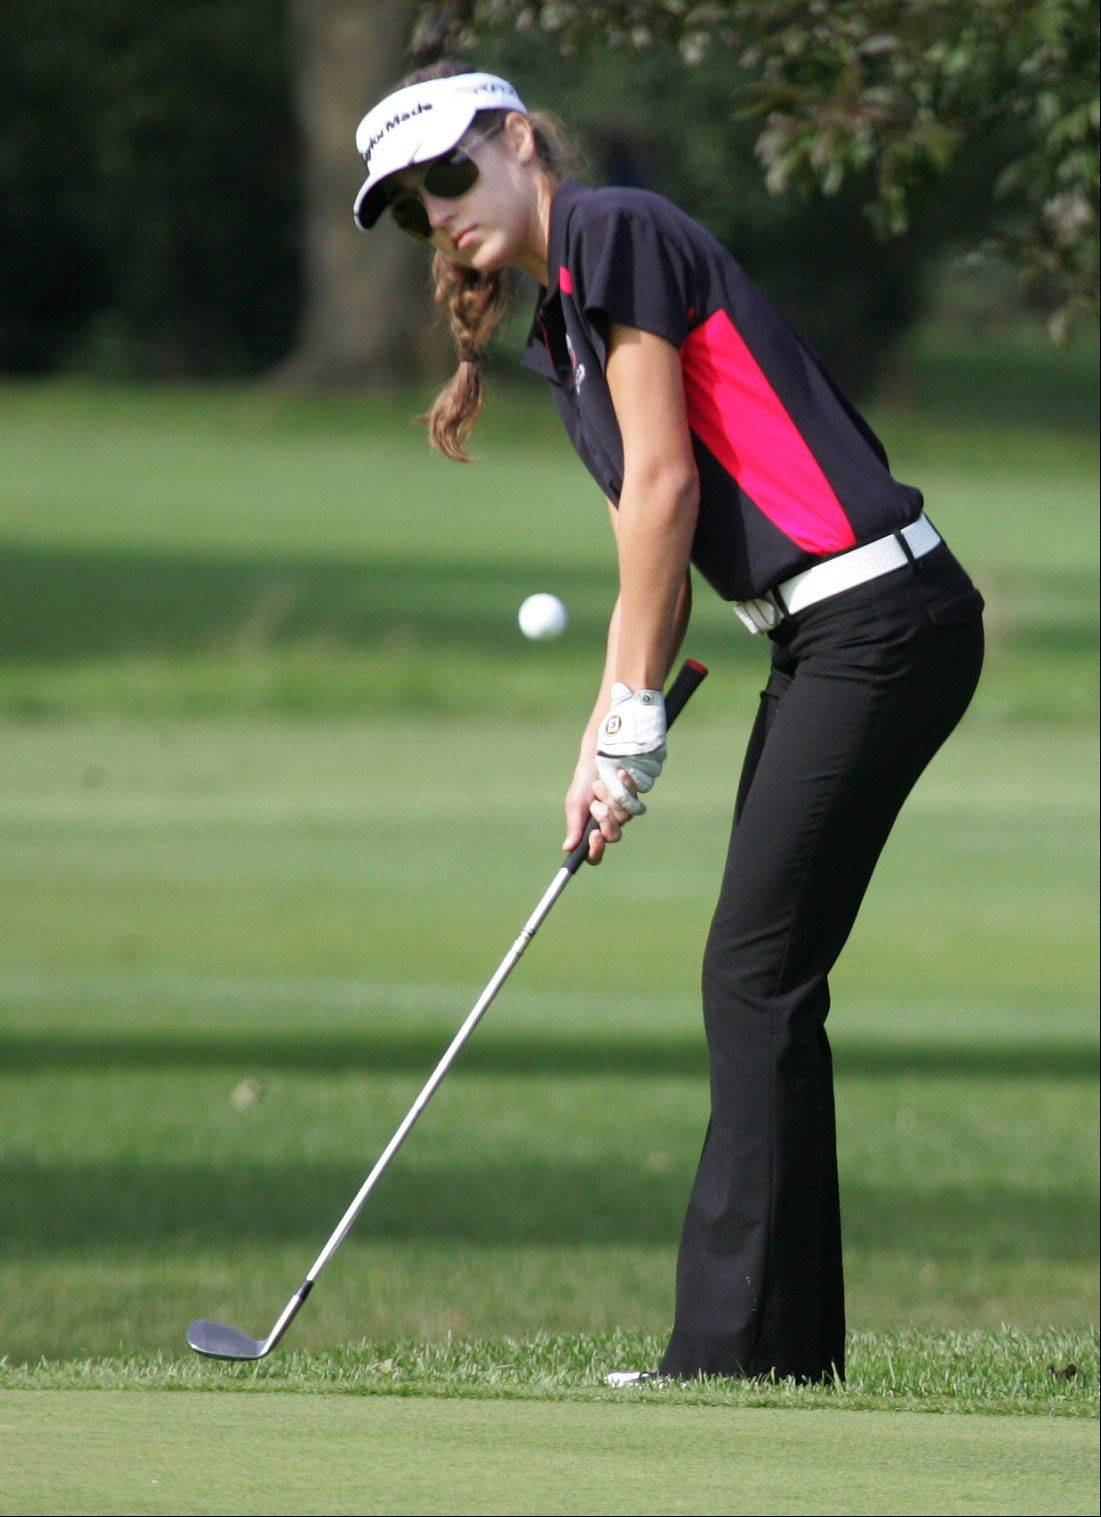 Mundelein golfer Courteney Fabbri piches her shot up onto the green on the sixth hole during the North Suburban Conference girls golf tournament Tuesday at Deerpath Golf Course in Lake Forest.